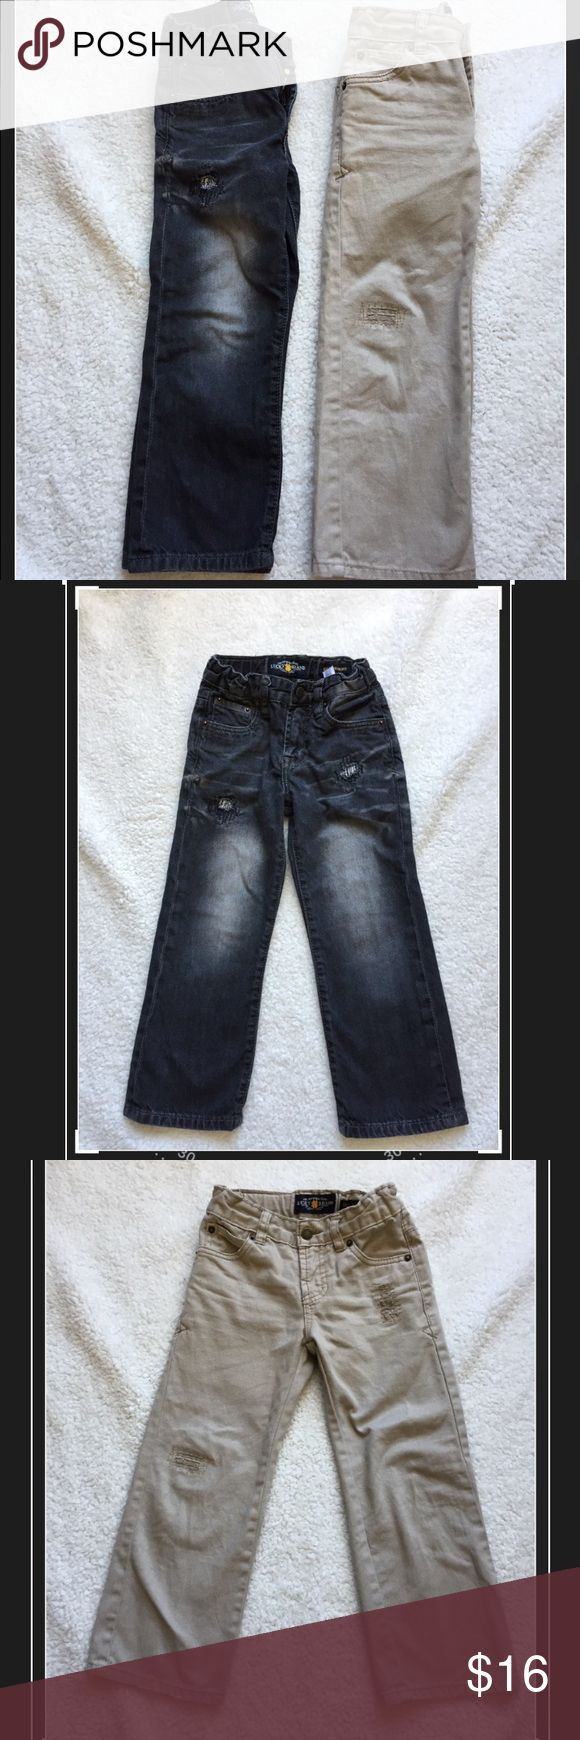 "Lucky Brand Boys Jeans Distressed black jeans and distressed khaki color jeans, both have adjustable waist bands. Some wear in the knees, but no stains or rips, still ton of life in these. Waist to hem 24.5"", both the same size. Lucky Brand Bottoms Jeans"